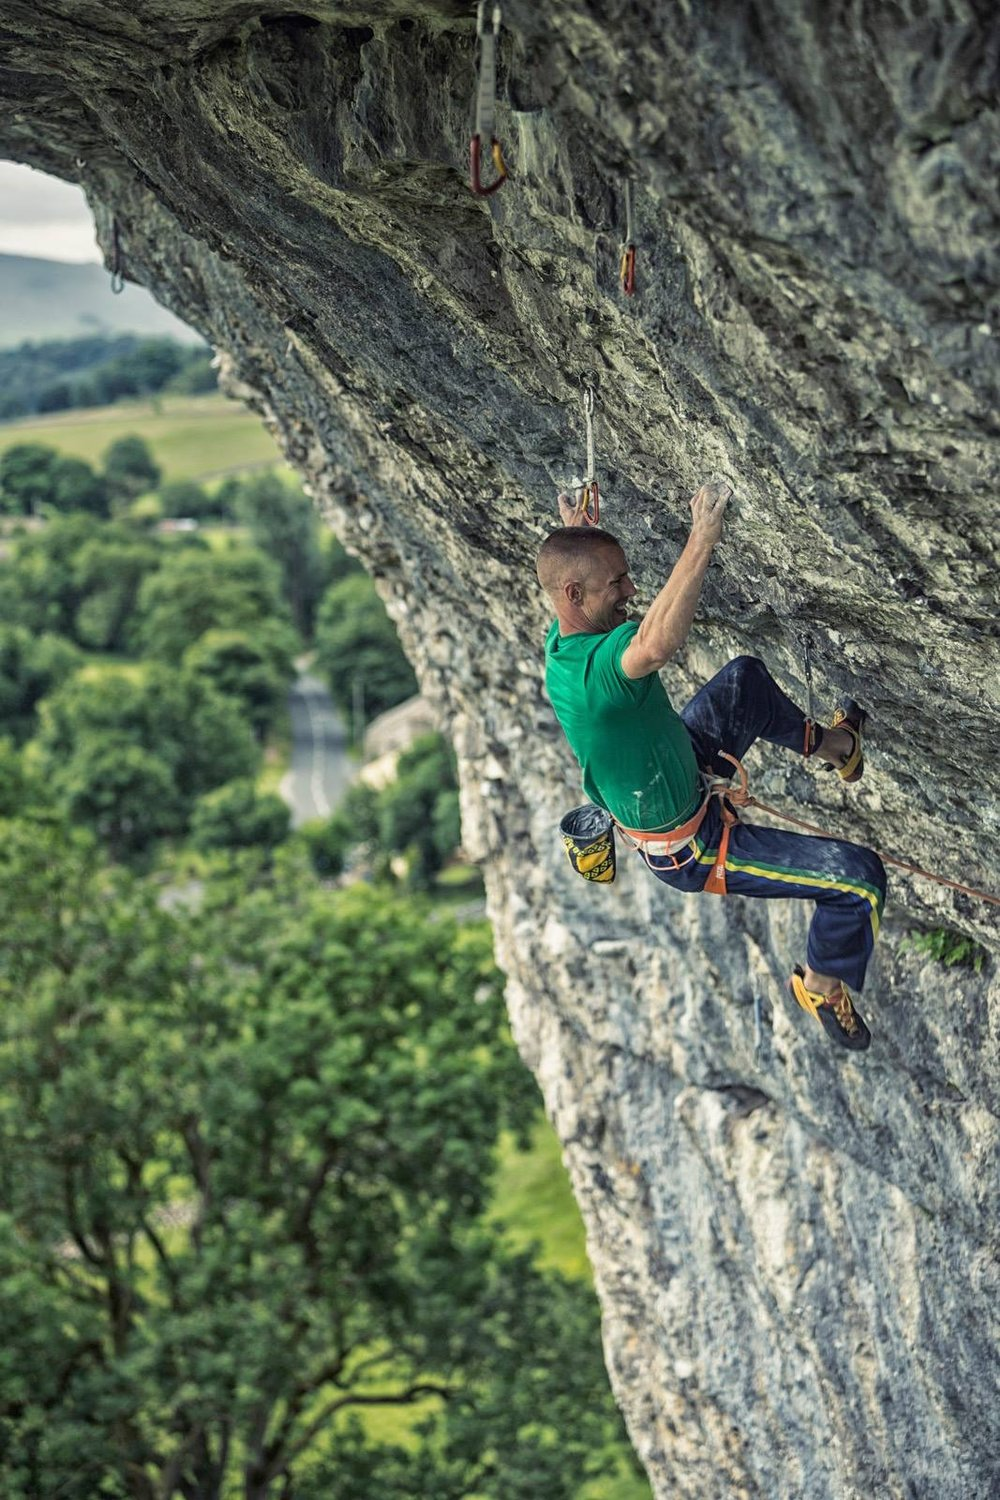 Freakshow 8c, Kilnsey, UK. The crucifix crux move.   Photo: Copyright Lukasz Warzecha